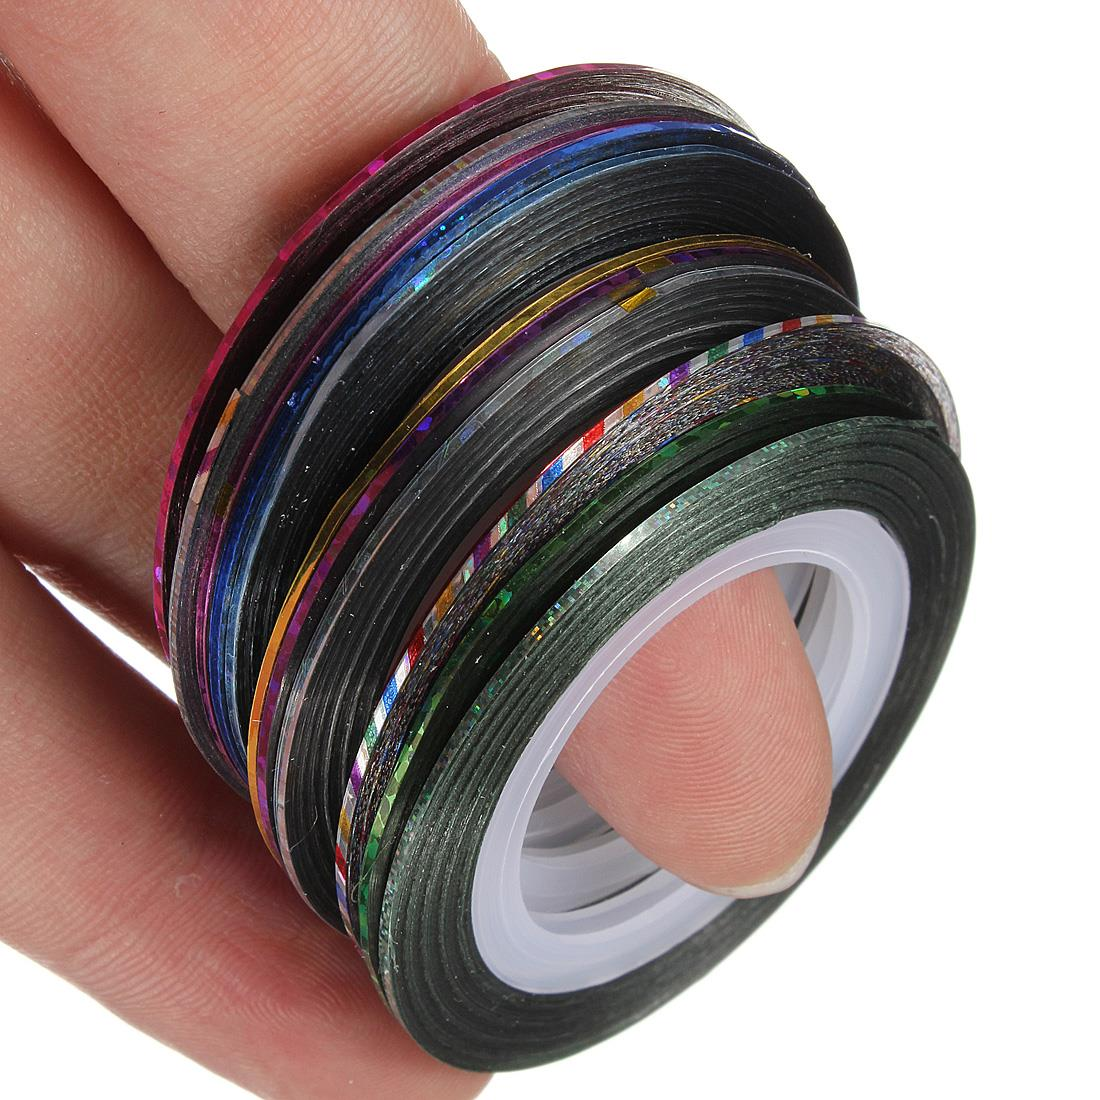 Striping Tape Line Nail Art: Aliexpress.com : Buy Fashion 12rolls/pack Multicolor Nails